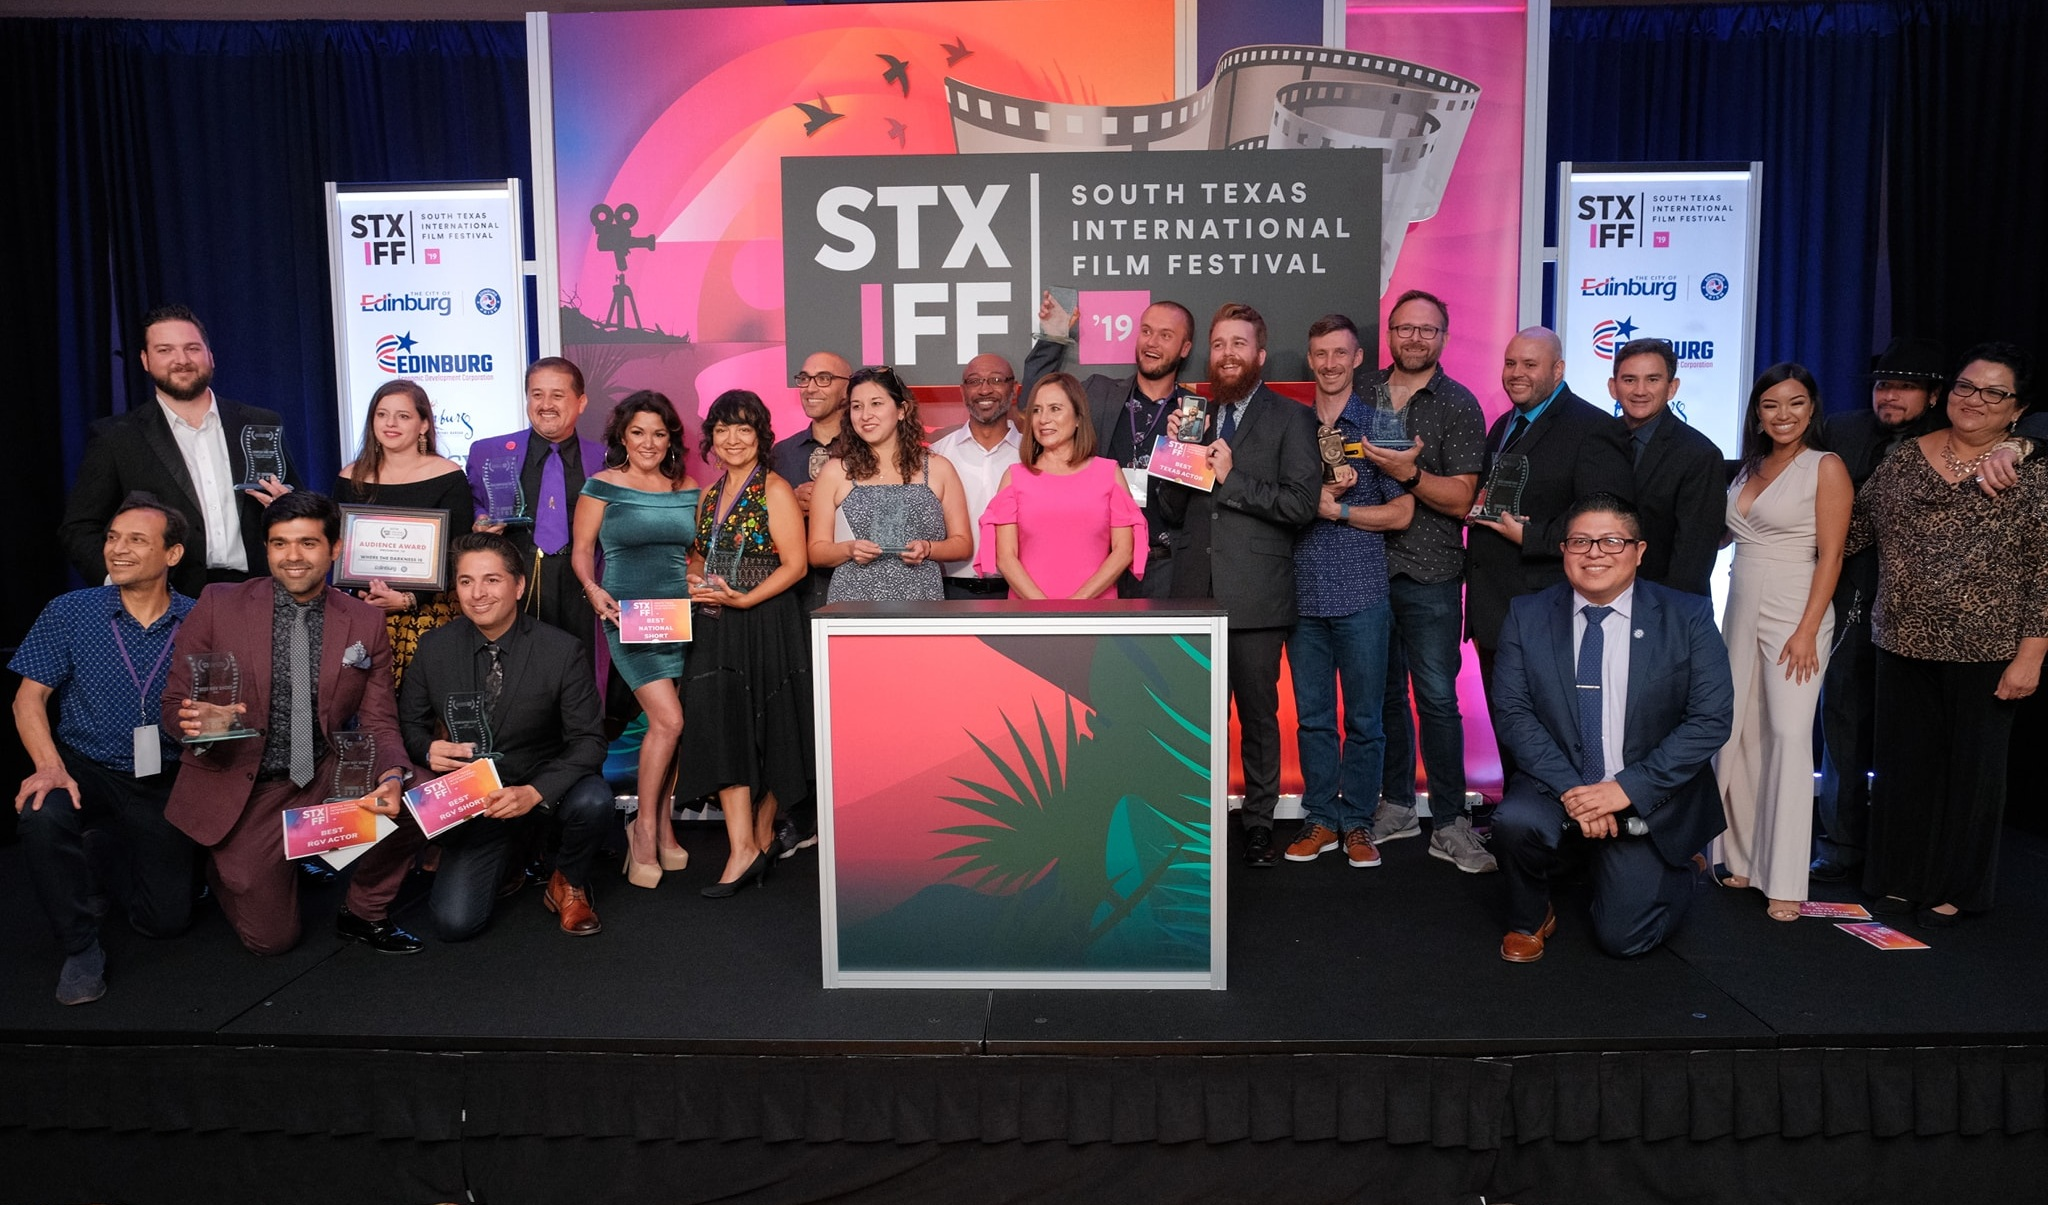 Congratulations! - Congratulations to all of the 2019 South Texas International Film Festival award winners!Full List of Winners